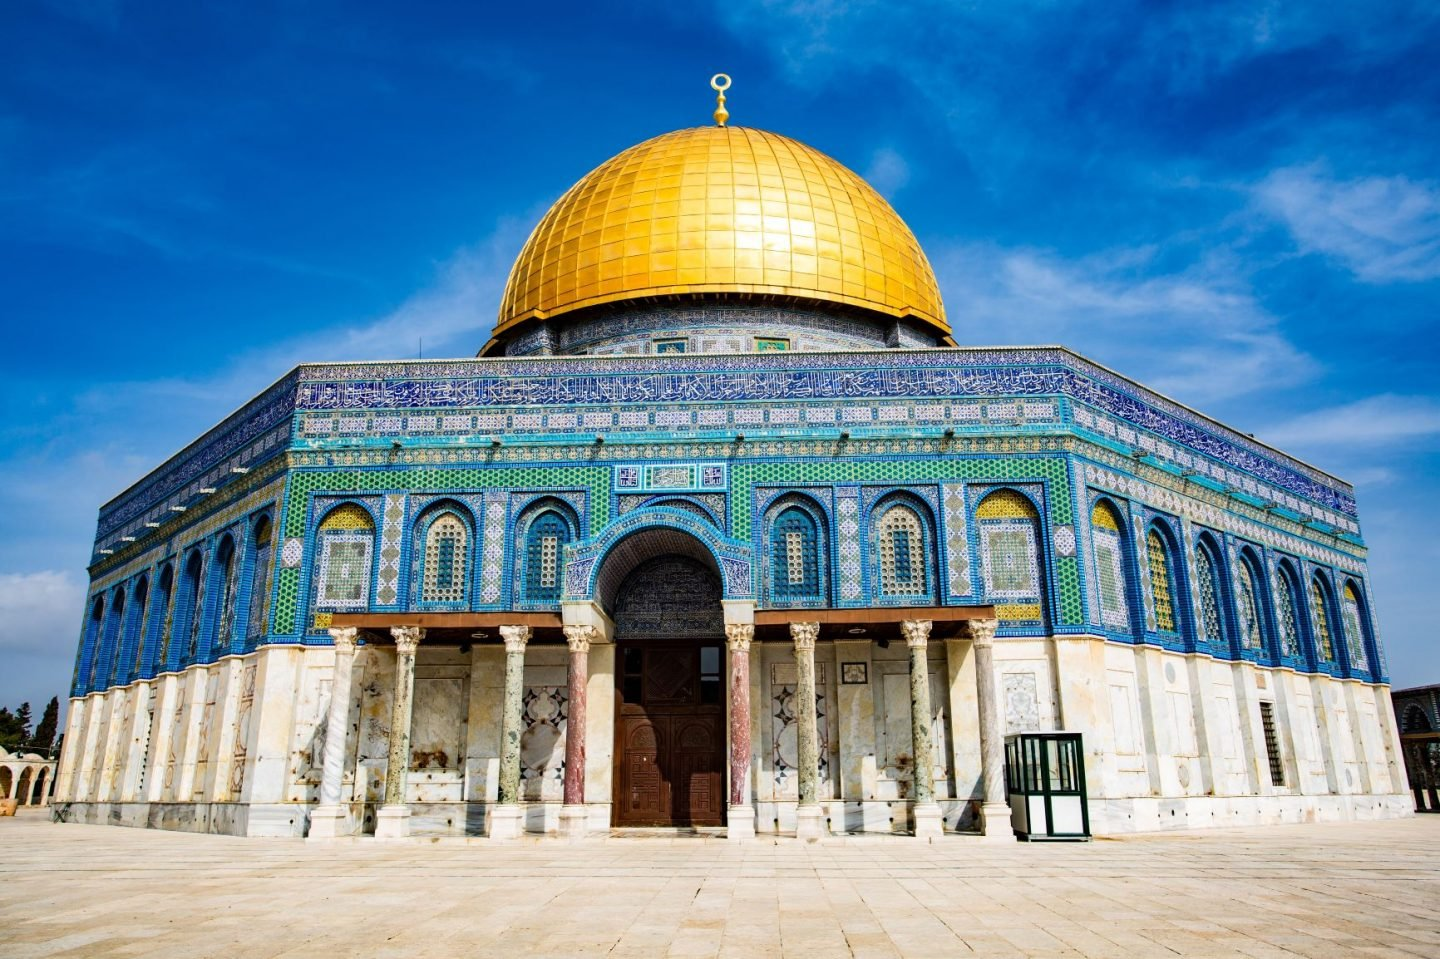 famous landmarks quiz questions and answers printable - Dome of the Rock